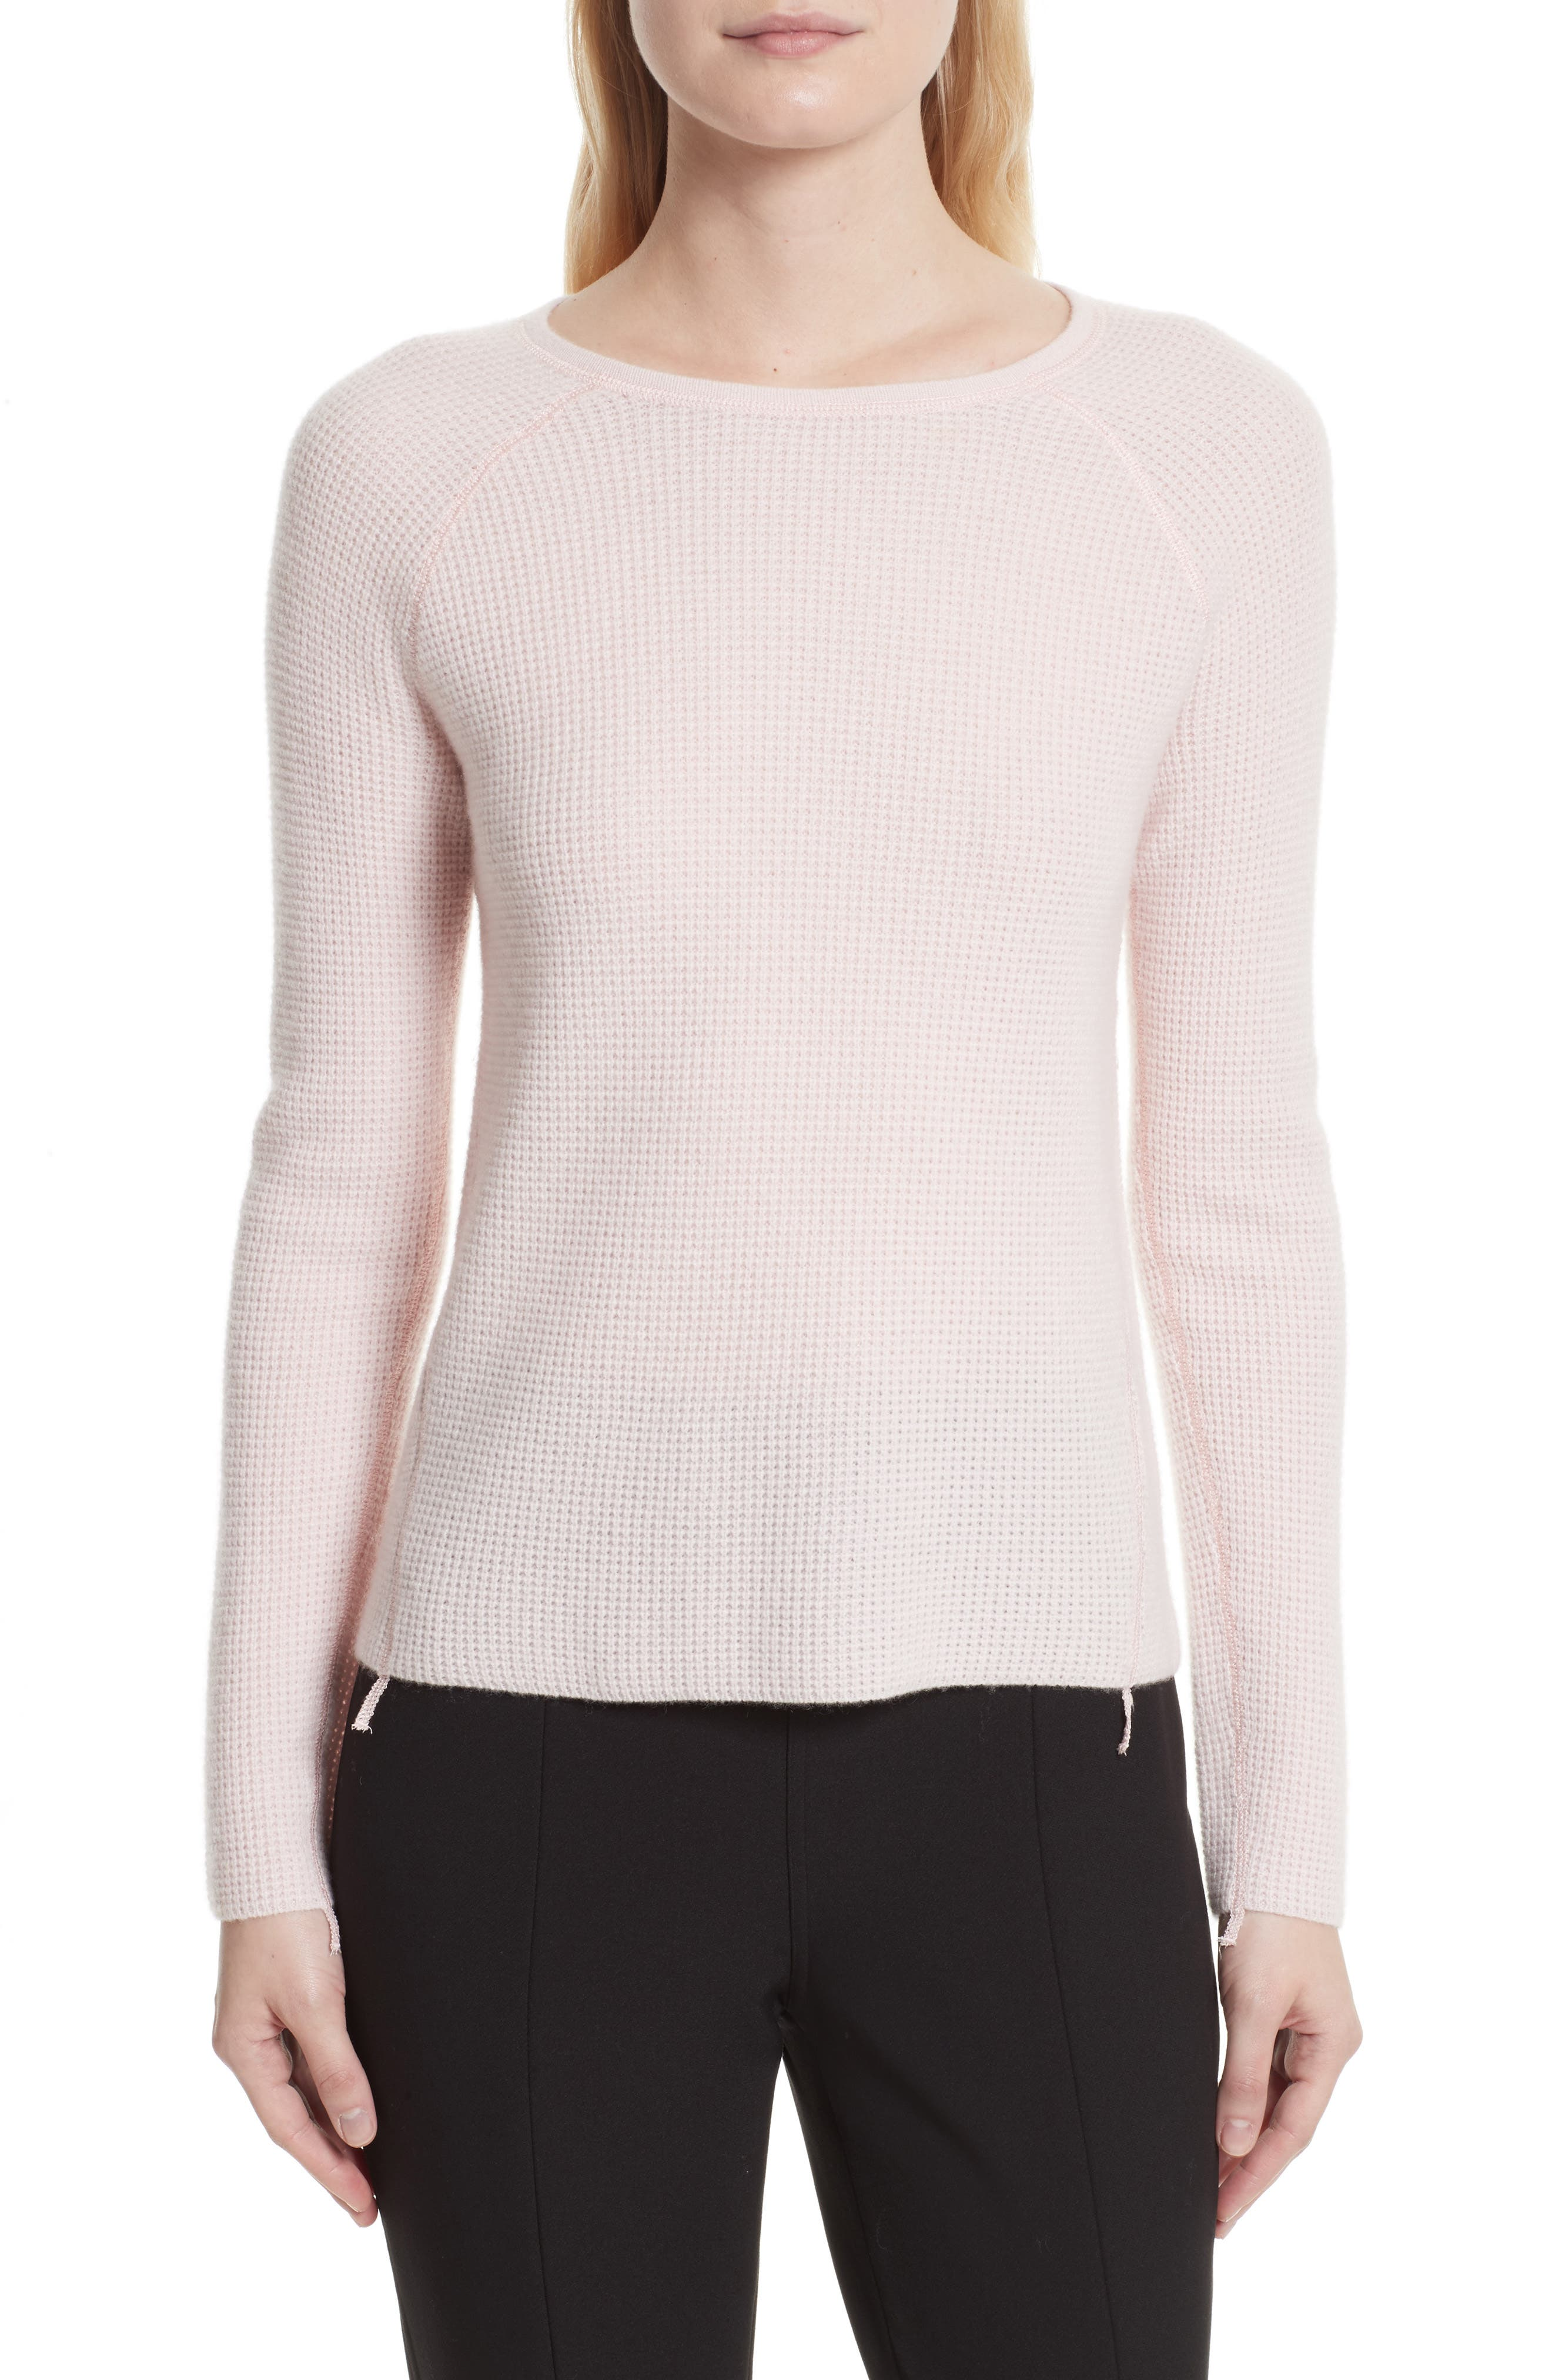 Karina Waffle Knit Cashmere Sweater,                             Main thumbnail 1, color,                             684